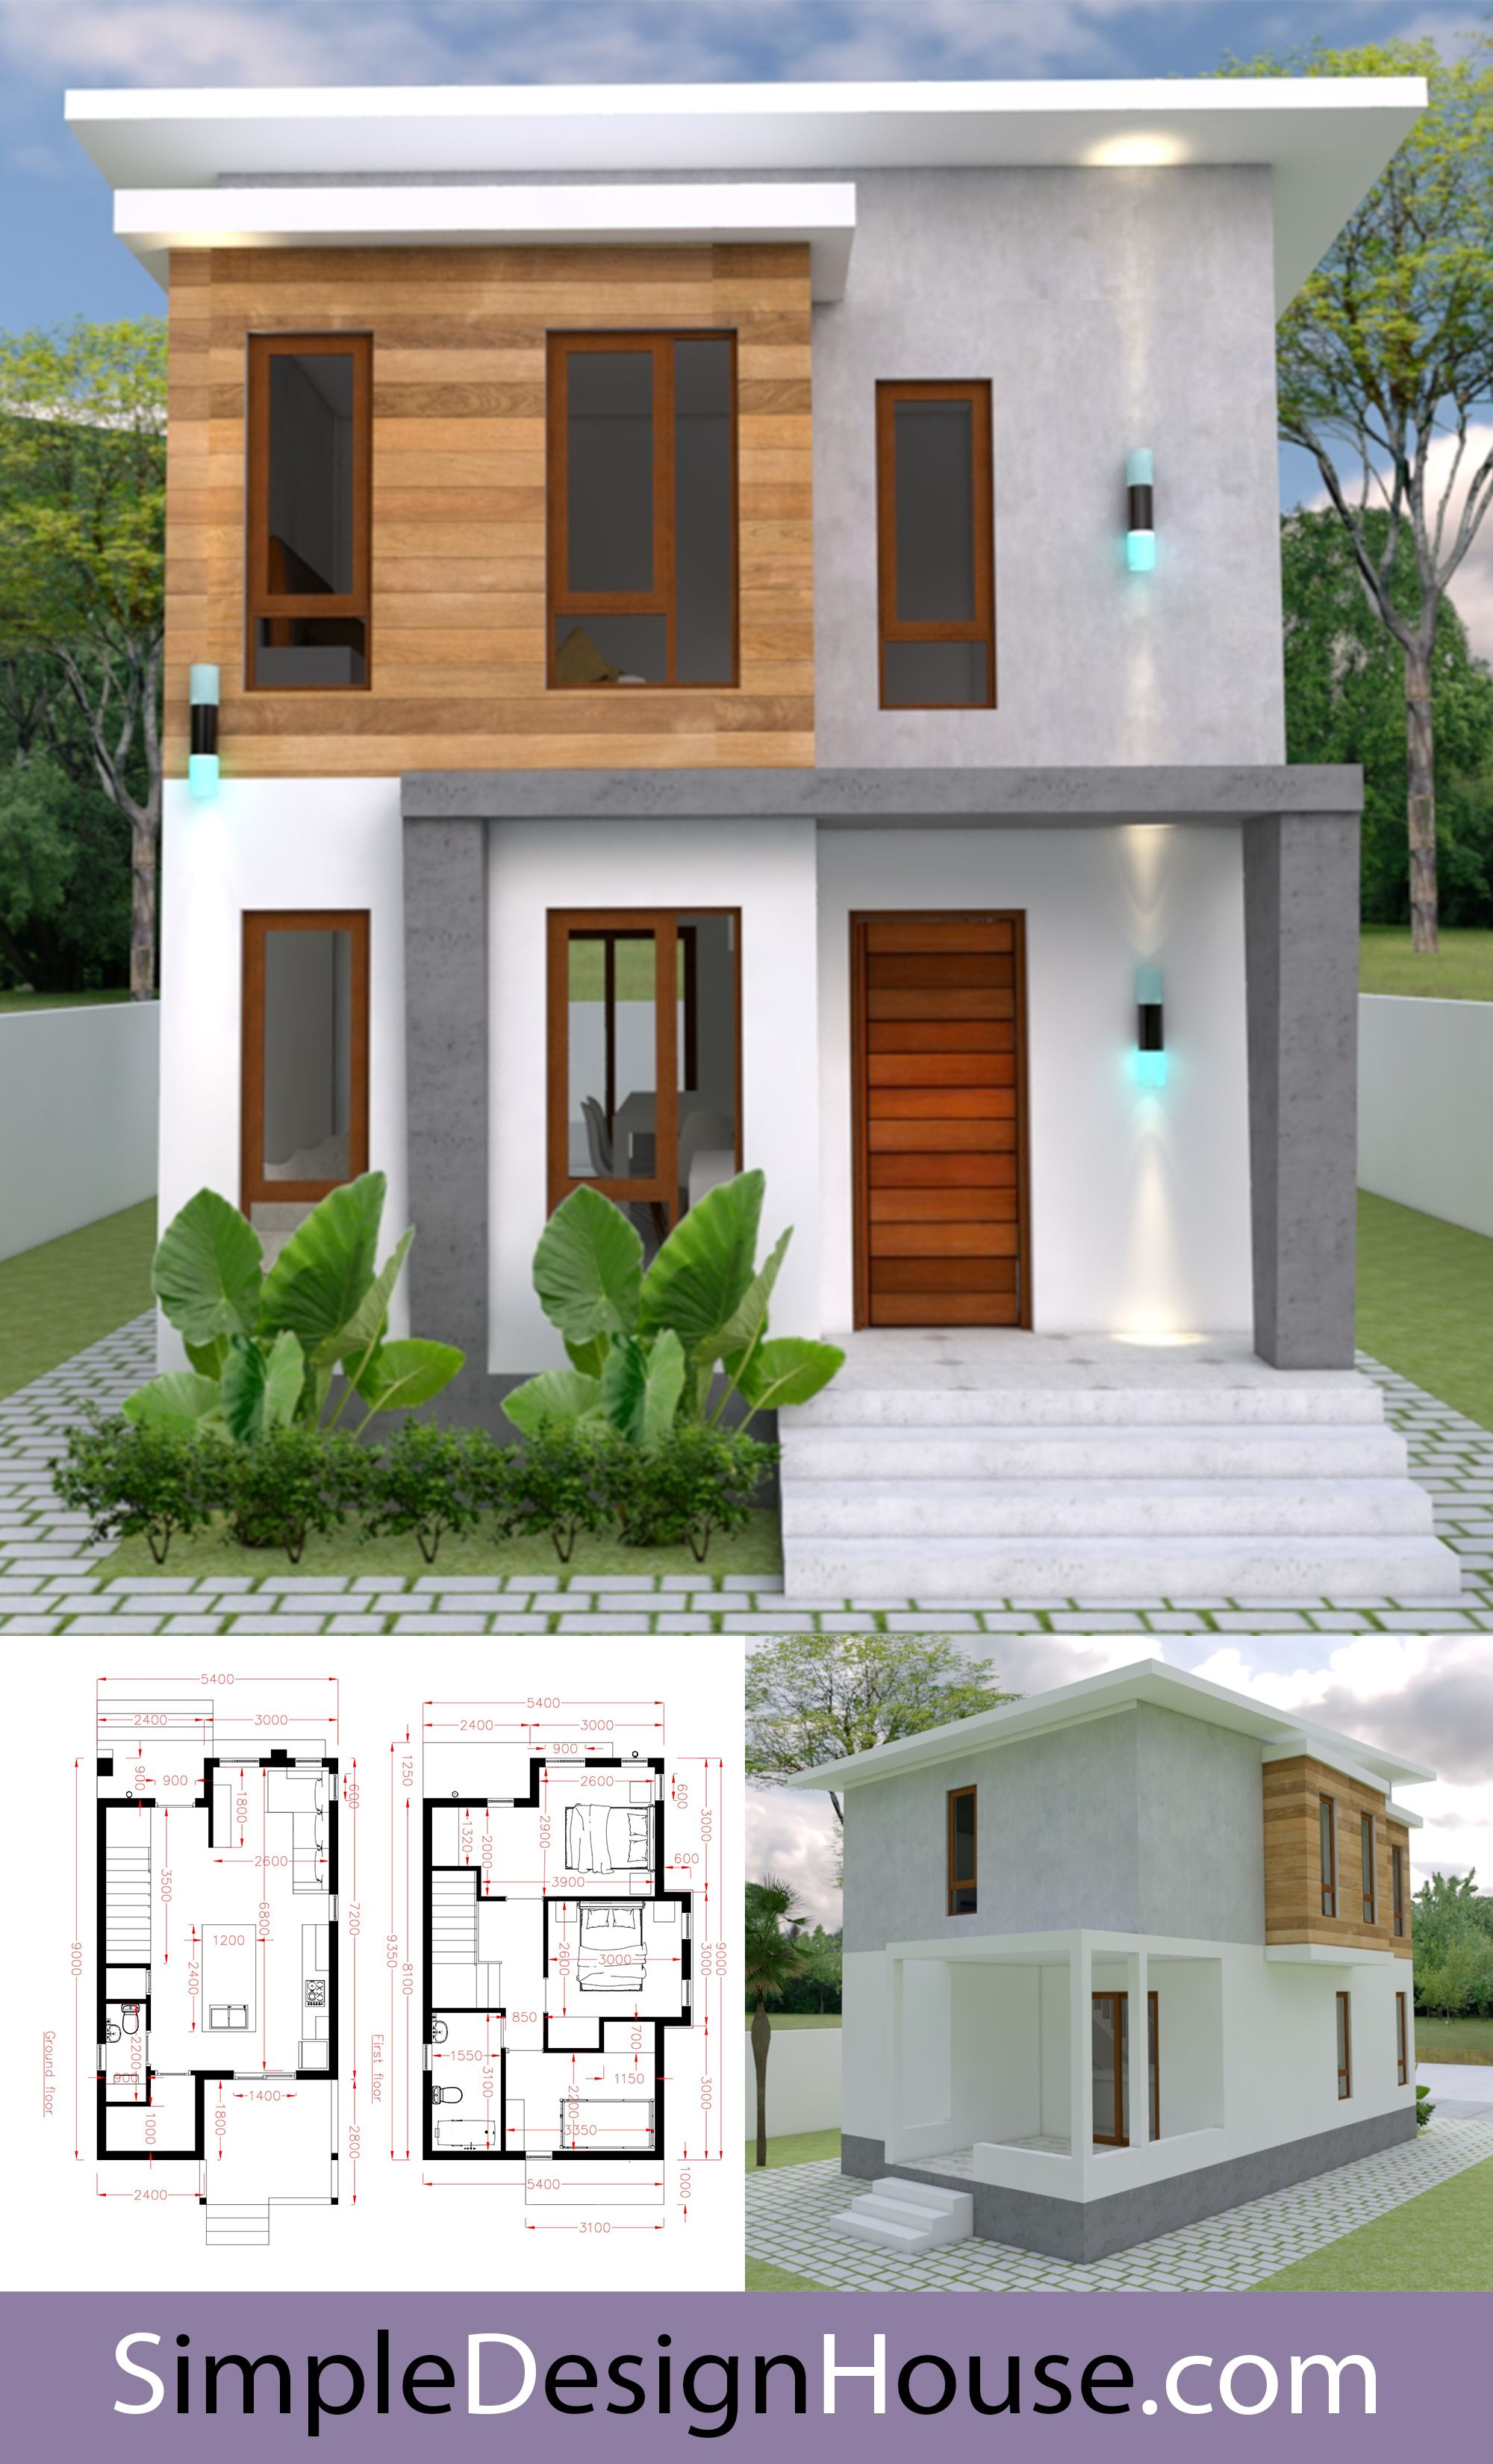 House Plans 5 4x9m With 3 Bedrooms In 2020 Simple House Design House Architecture Design Narrow House Designs